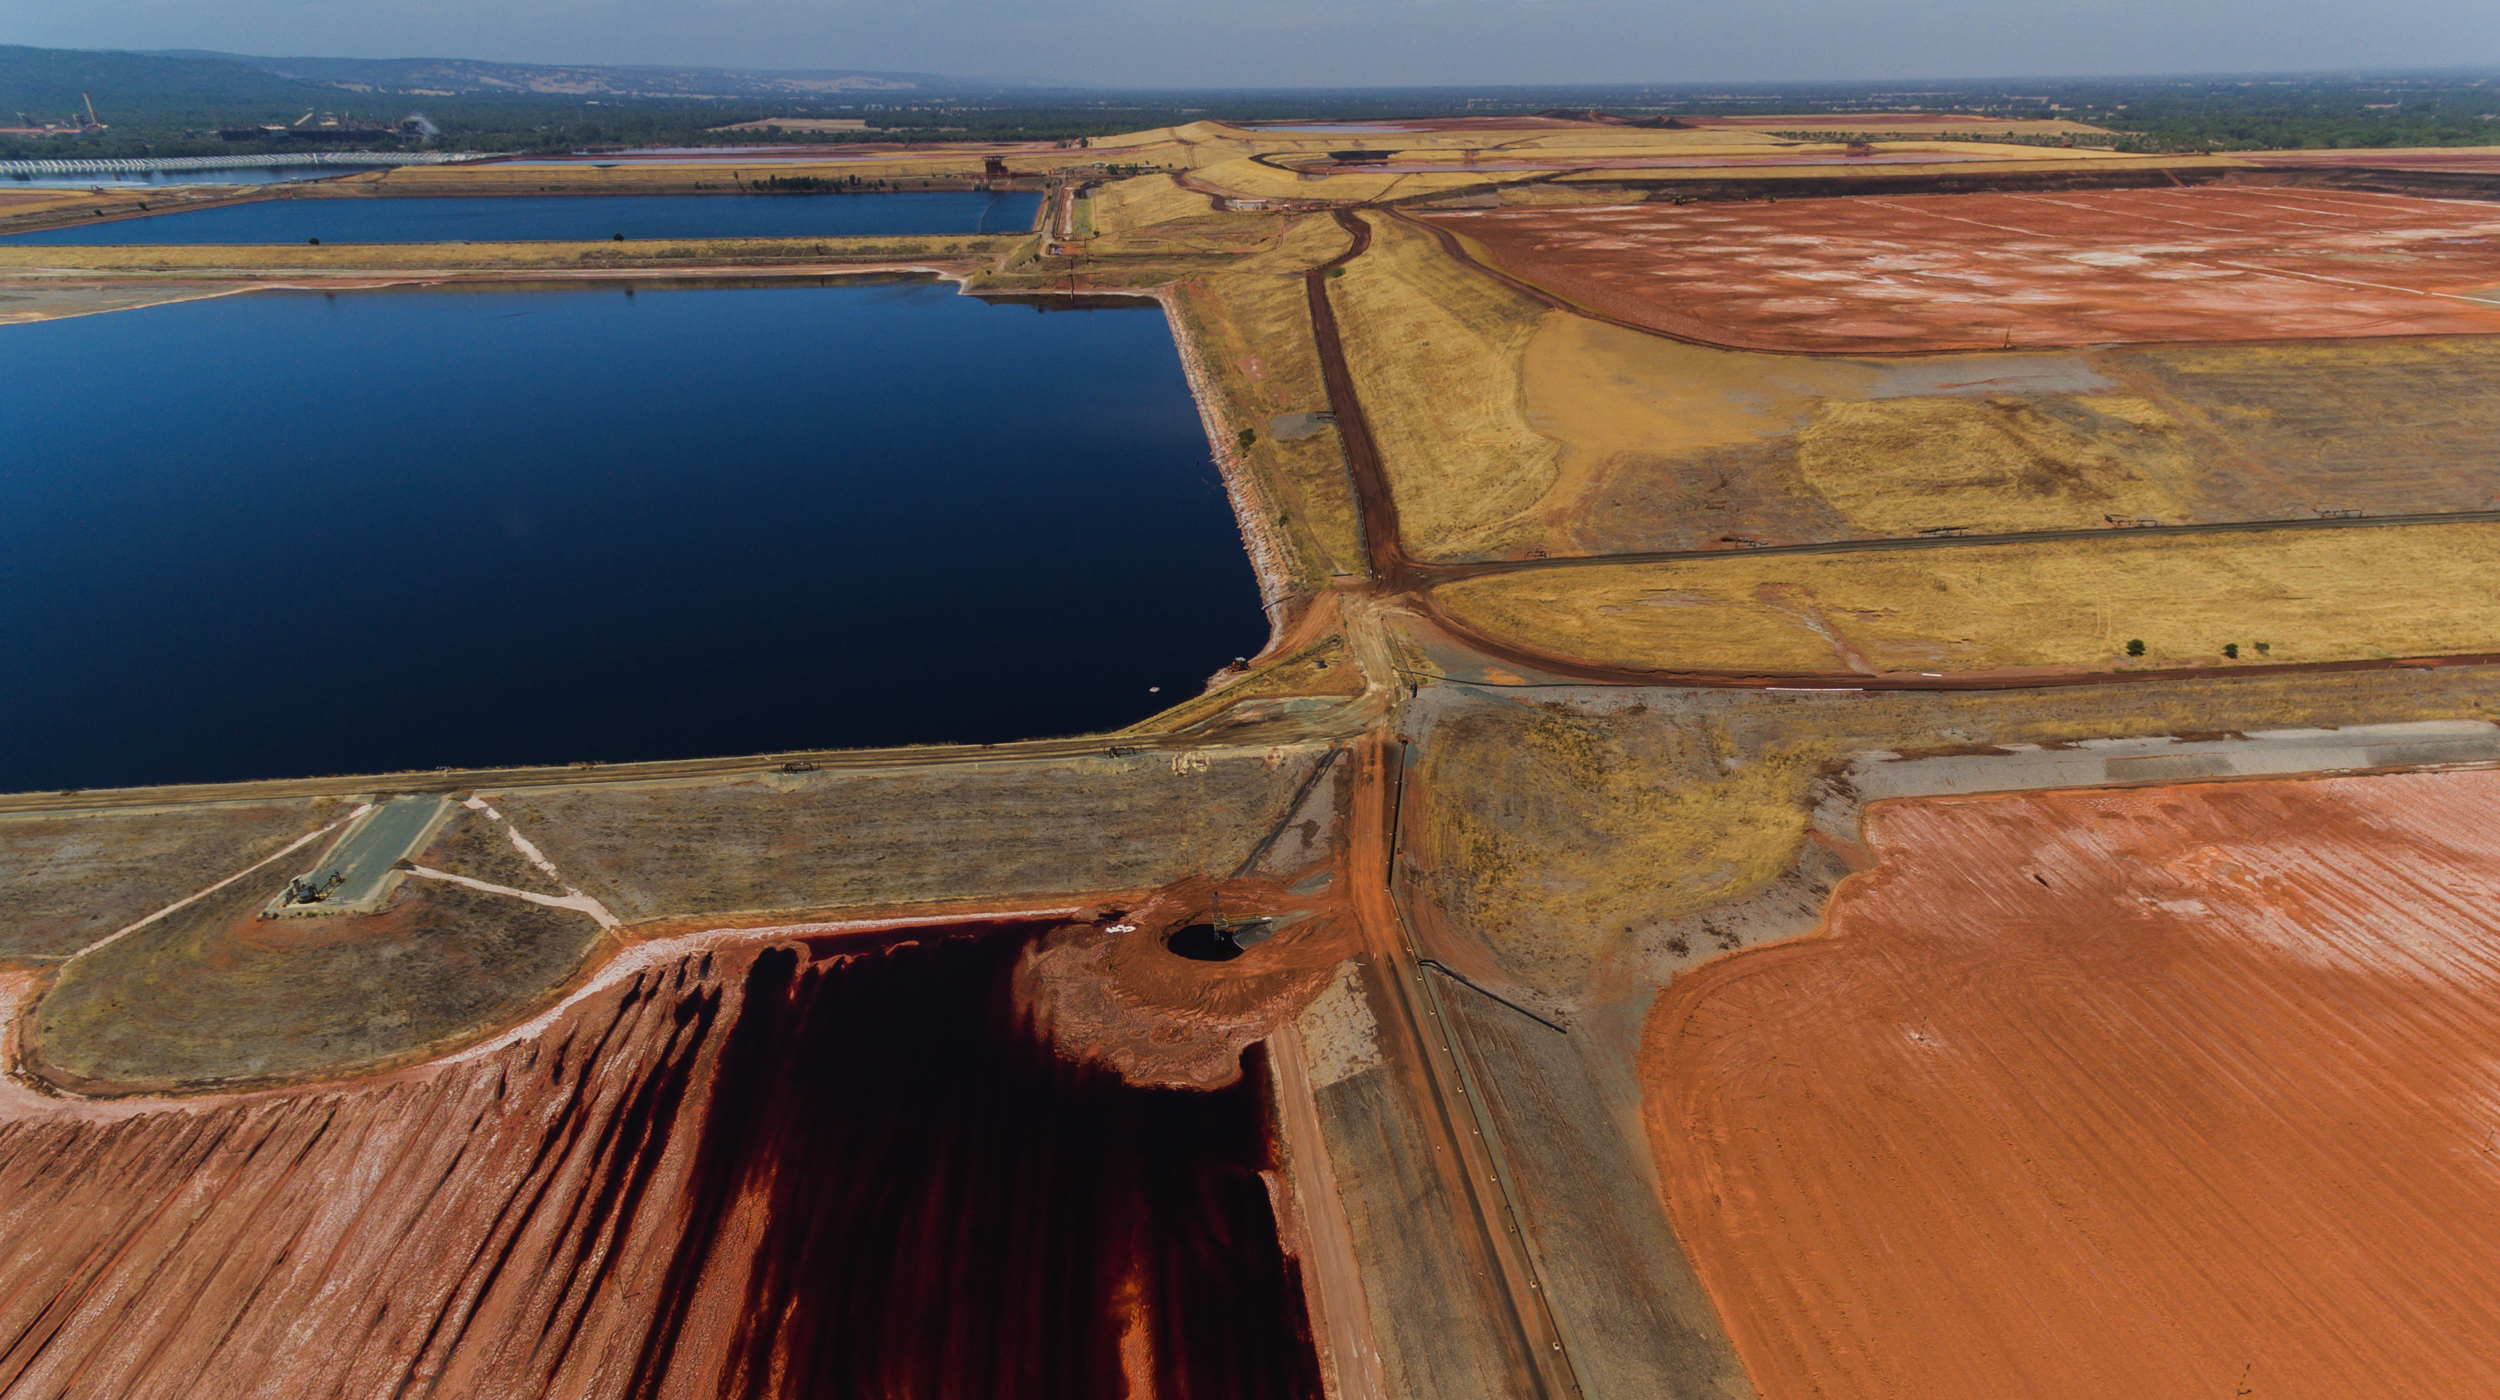 WOODVALE PONDS GROUNDWATER INVESTIGATION - VICTORIA - BlueSphere was engaged to determine the interaction (if any) between the ponds associated with underground mining operations and the local groundwater system, particularly given the various groundwater uses down catchment.